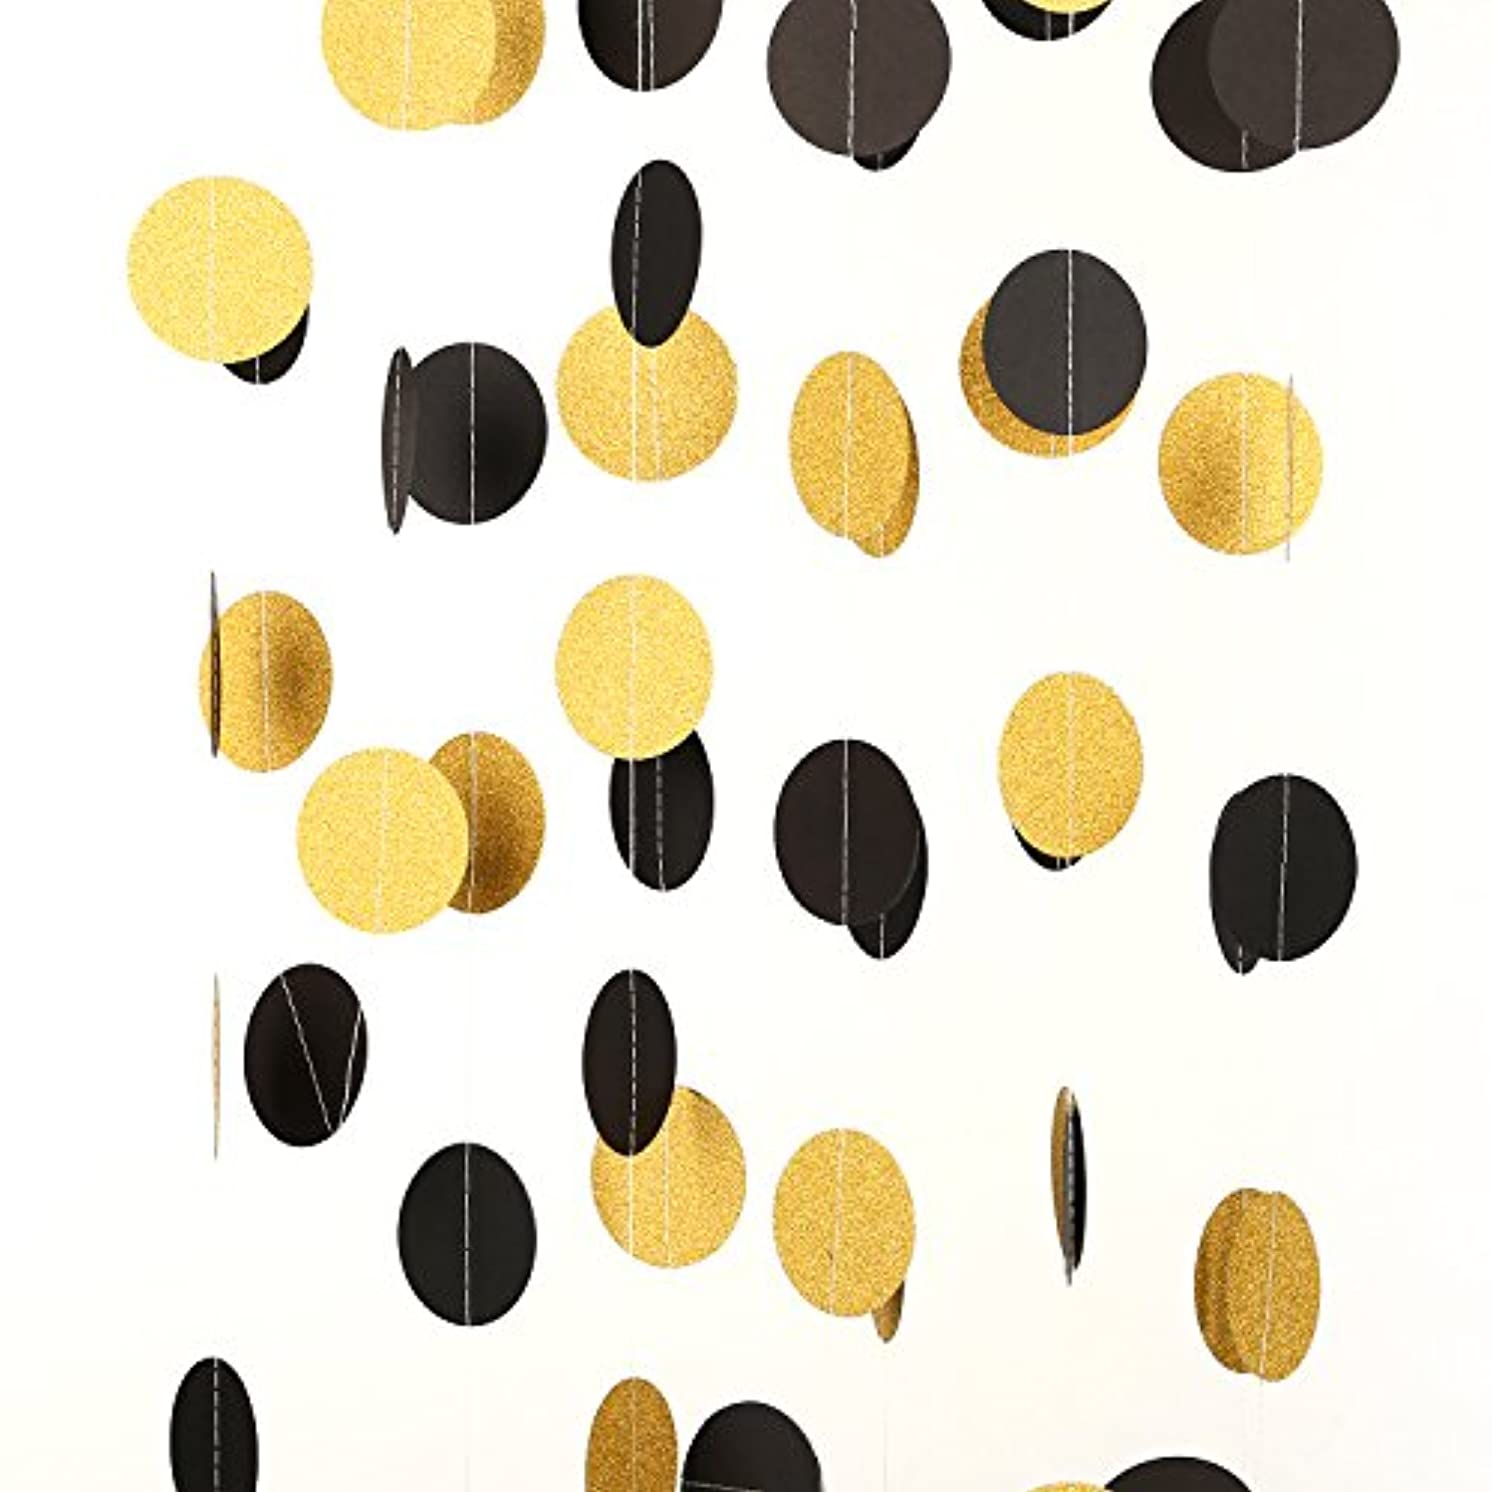 MOWO Glitter Paper Garland Circle Dots Hanging Decor 2'' in Diameter 20-feet in Total(gold glitter,black,3pc)